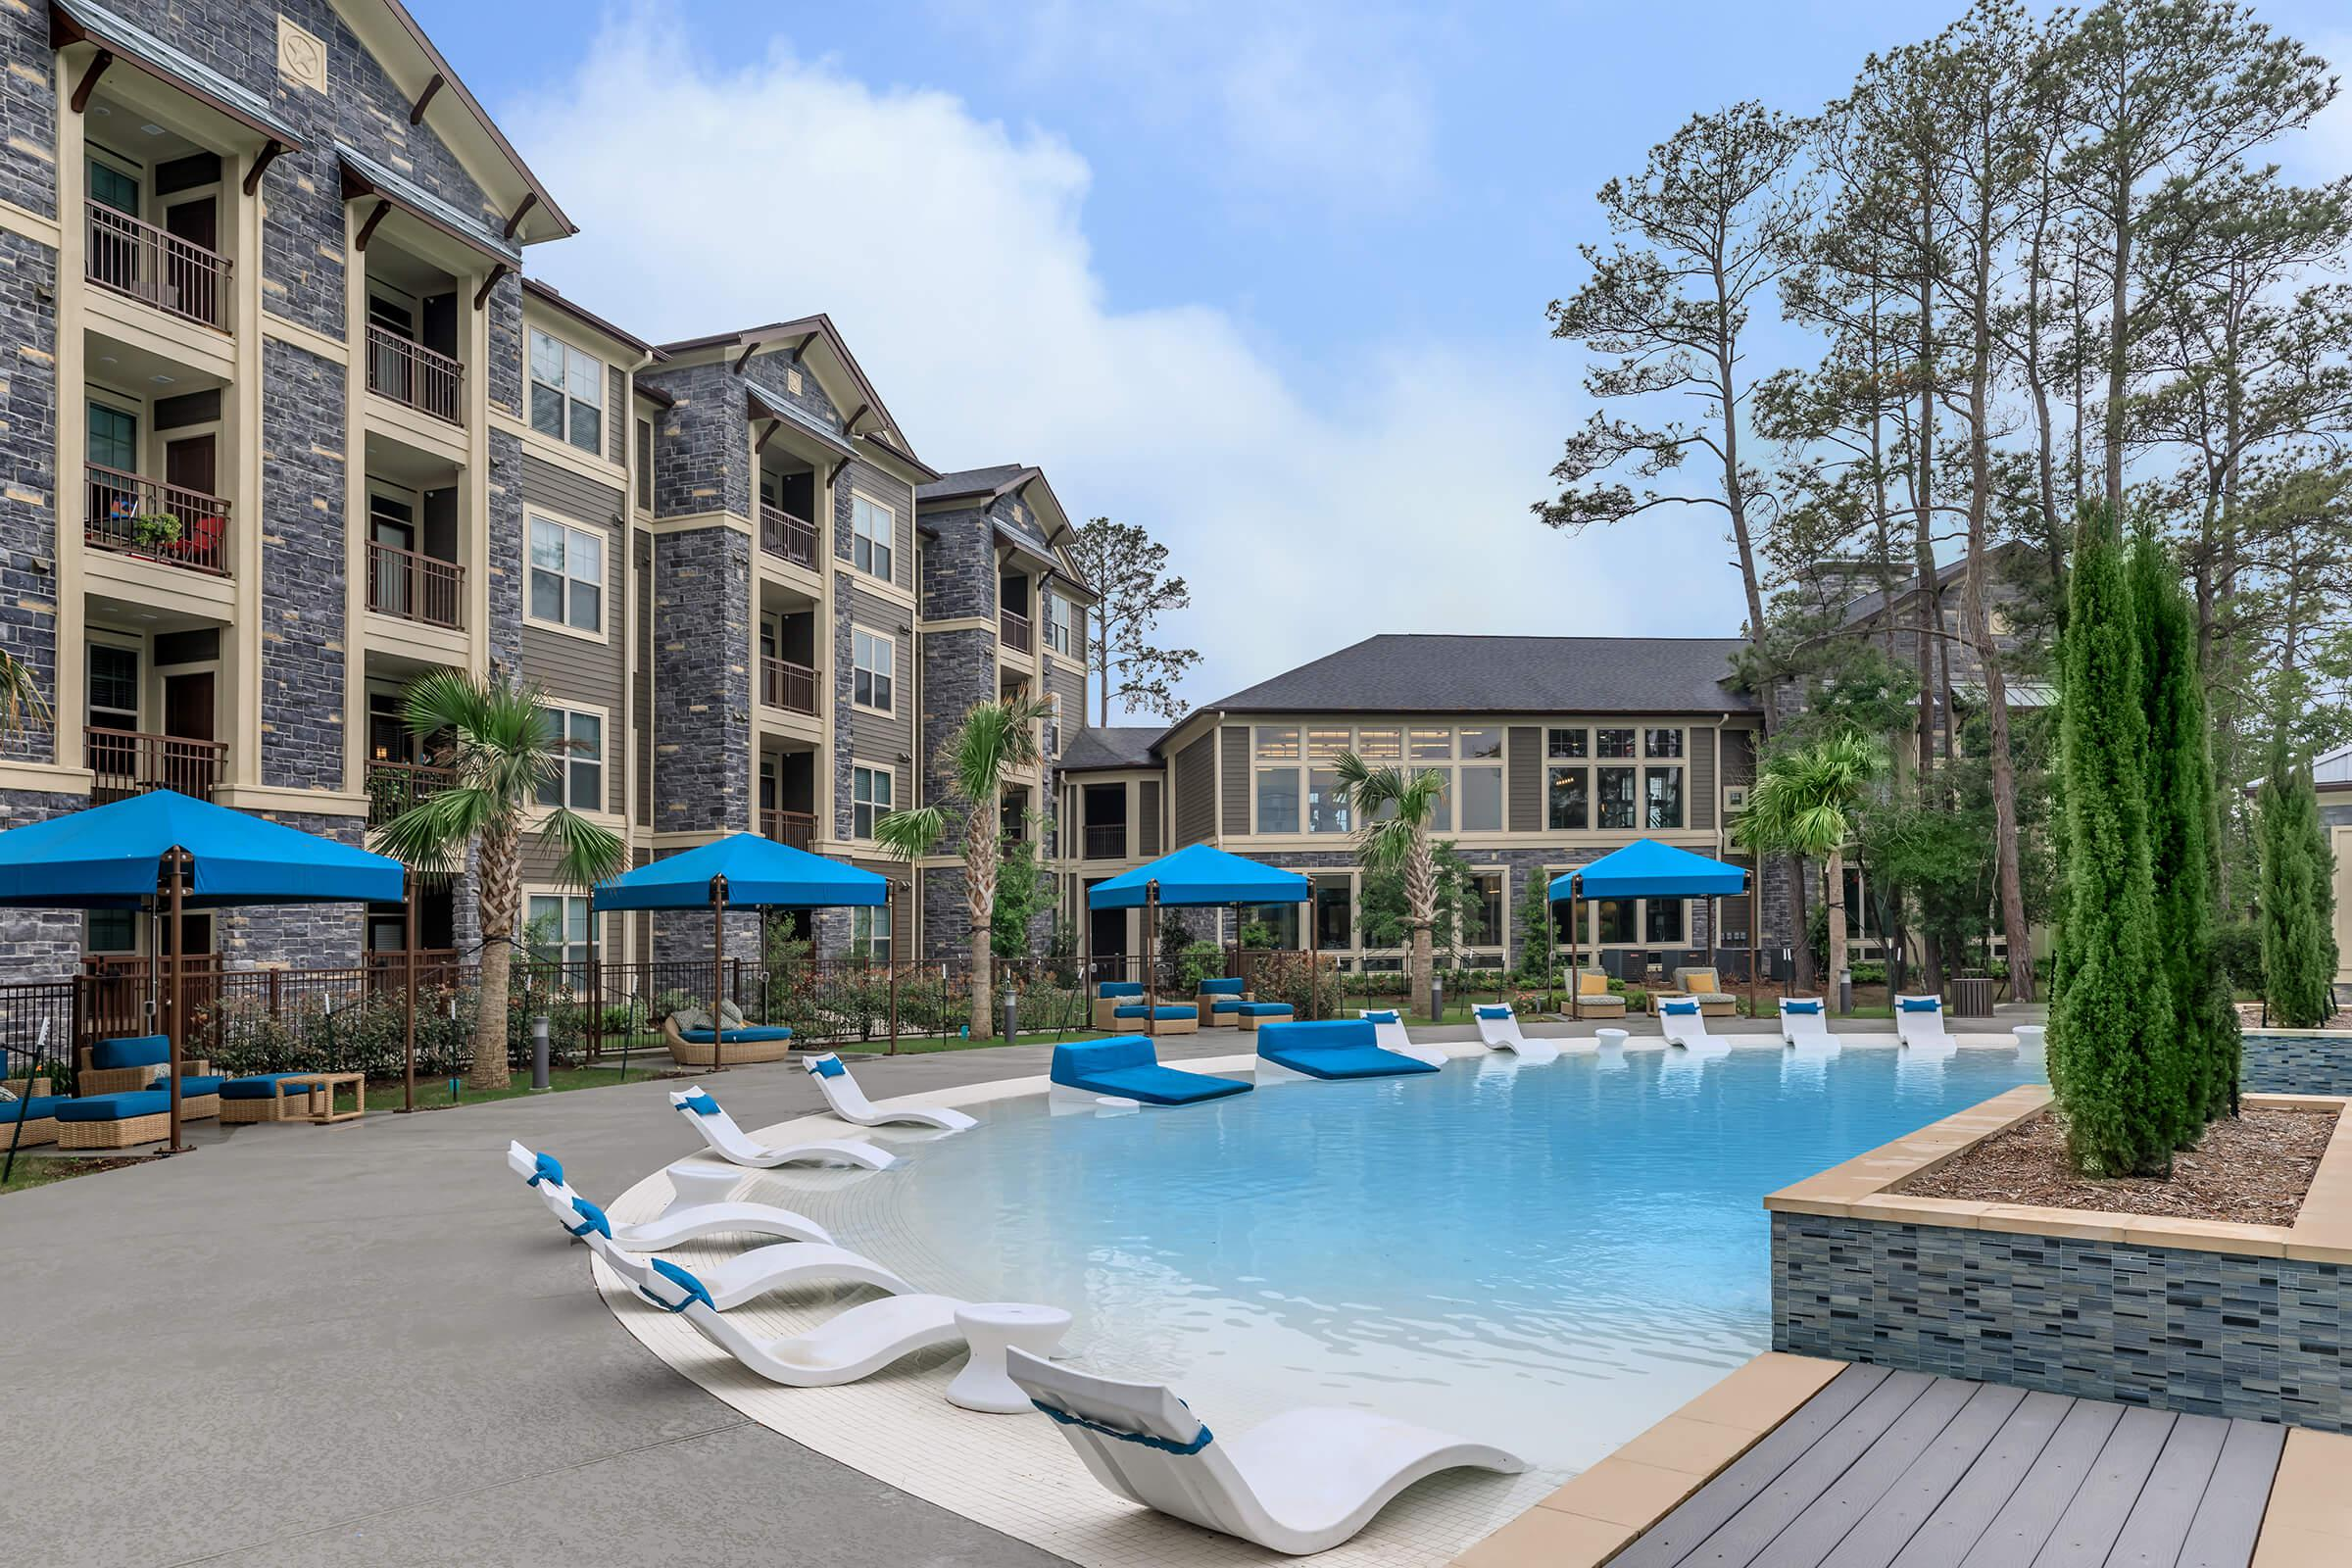 Beach entry pool with sunning area. Cabanas and Lounge chairs surrounding the pool.